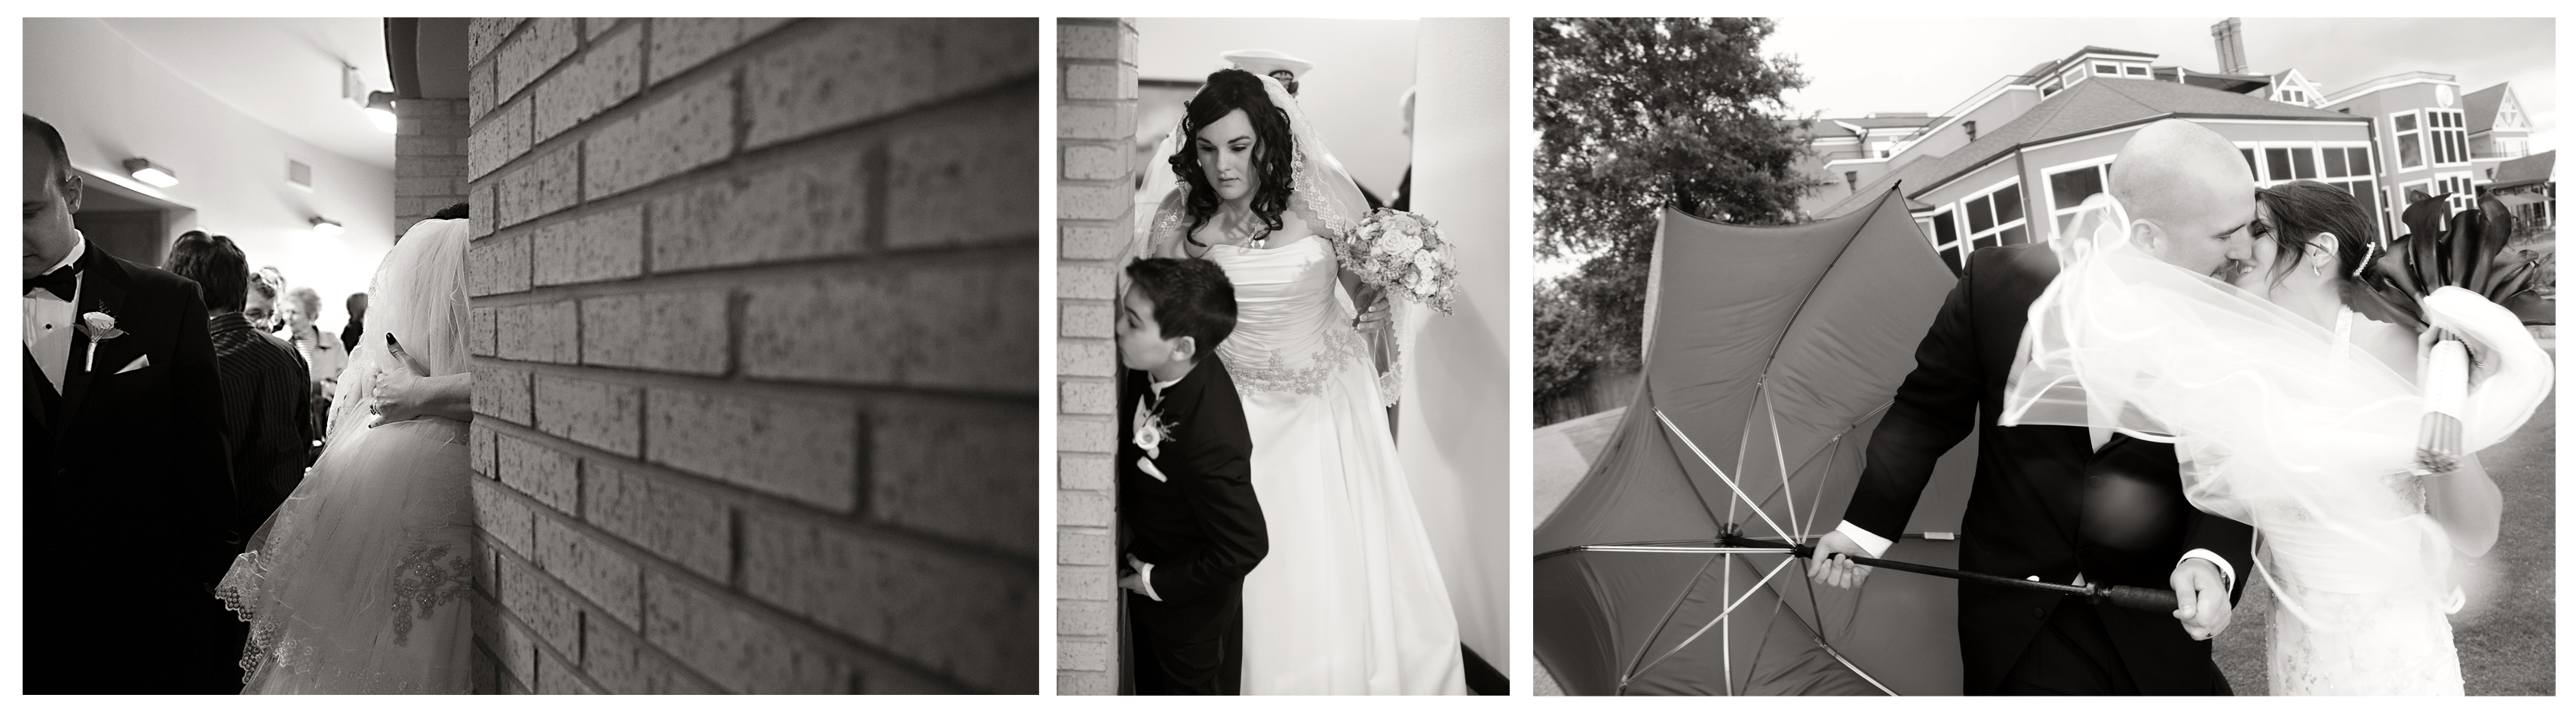 book-the-wedding-photographer-of-your-dreams-bw-spread